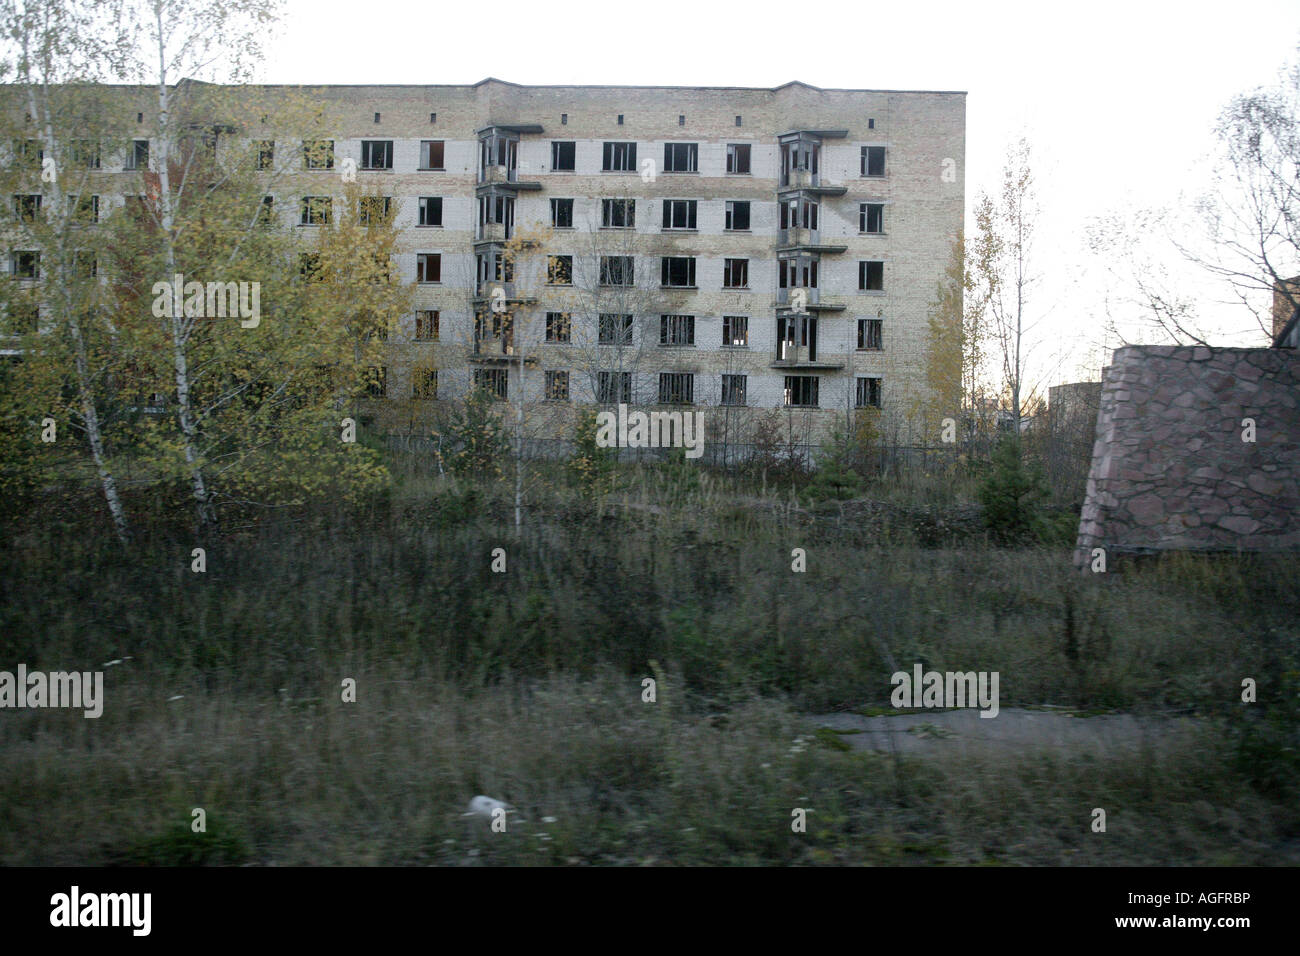 abandoned apartment buildings chernobyl exclusion zone - Stock Image